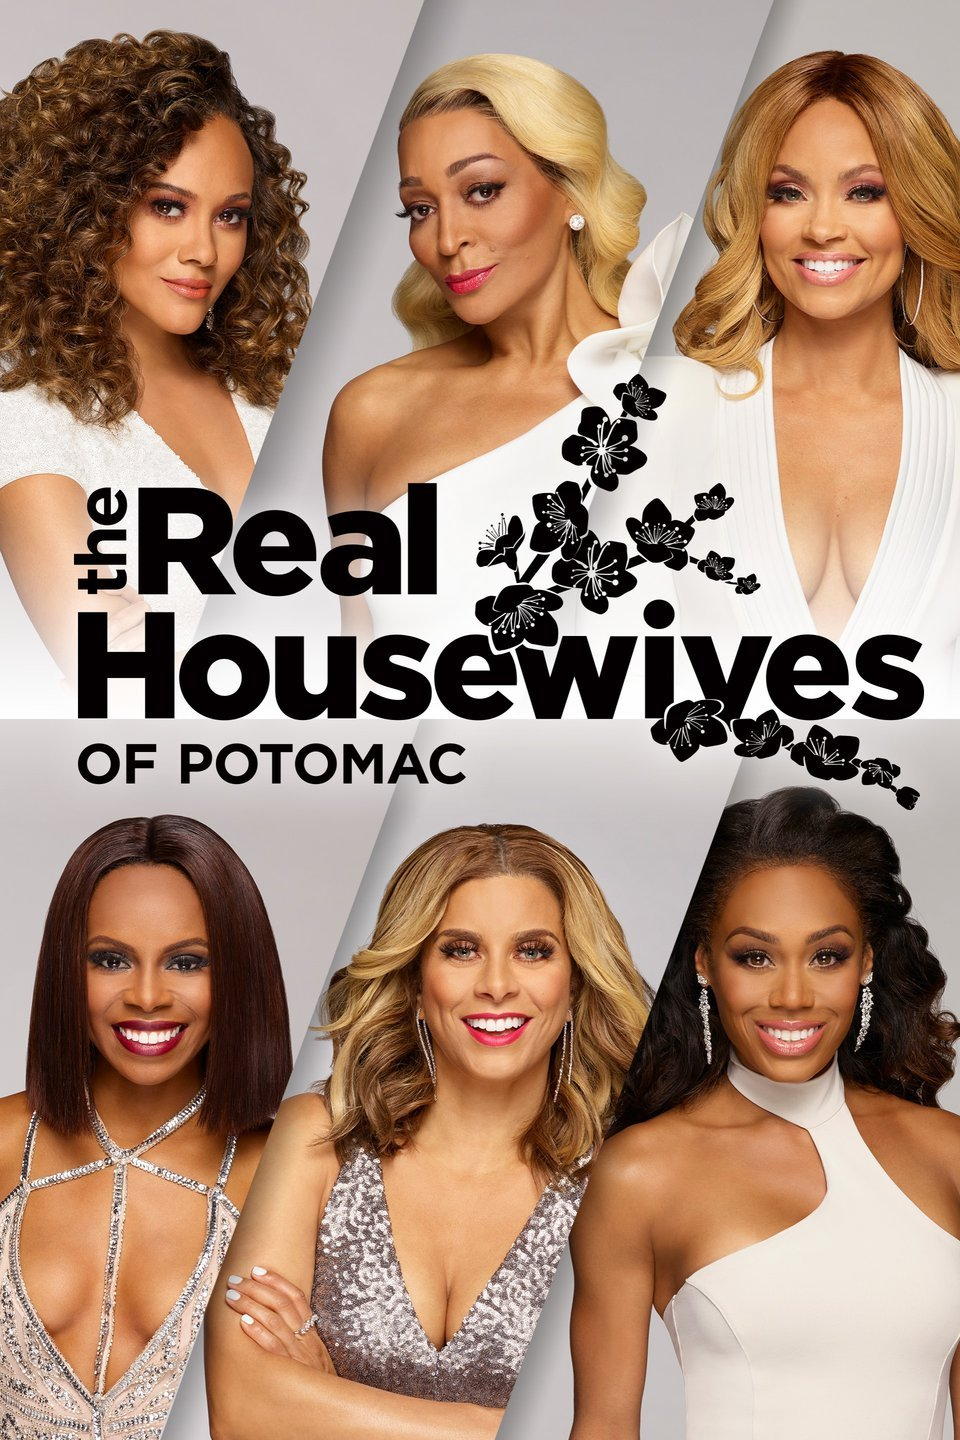 The Real Housewives of Potomac - Season 5 Episode 8